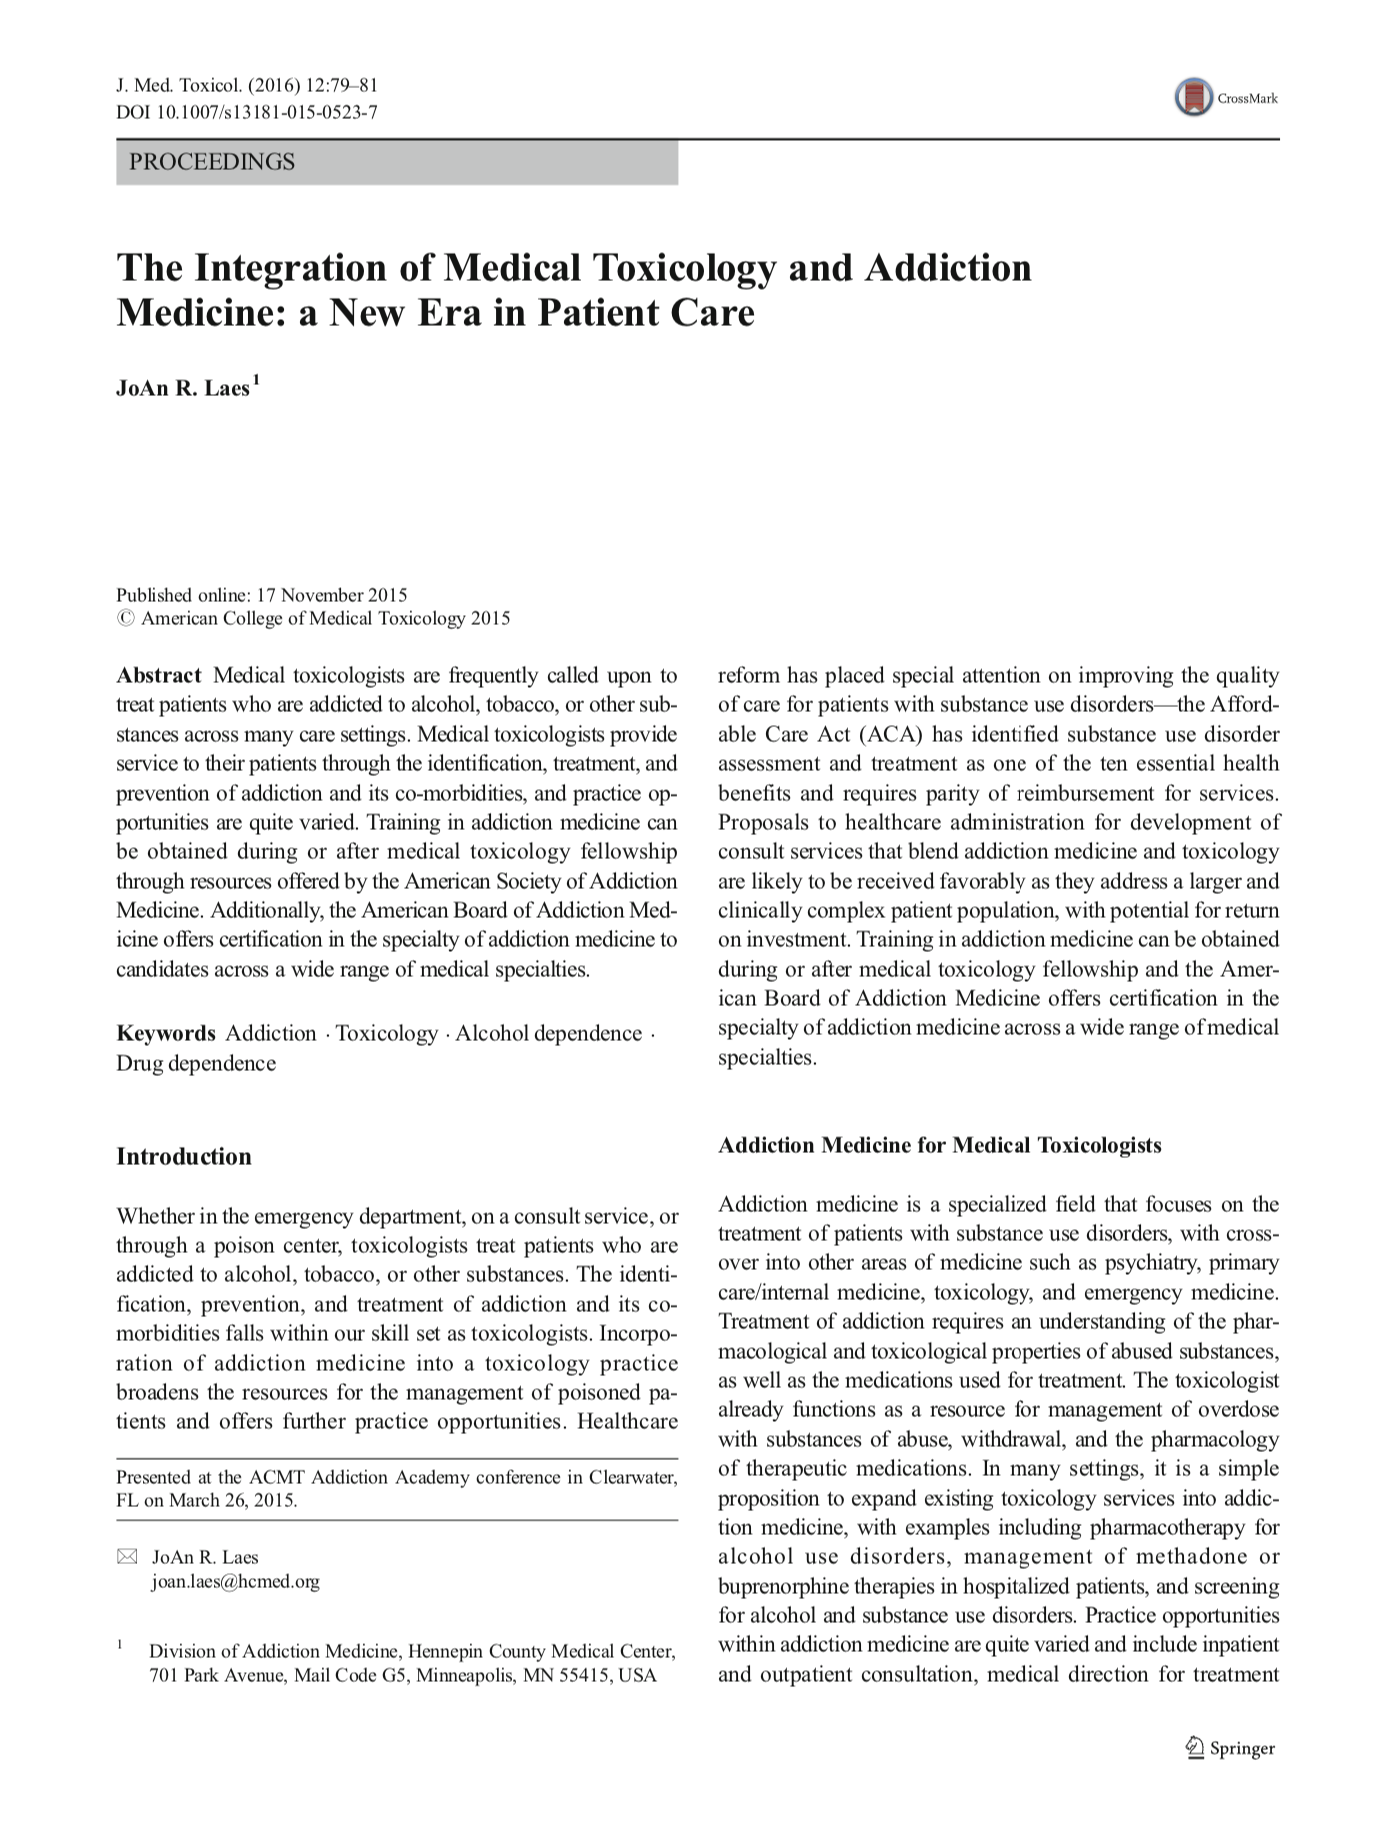 """JoAn E. Laes, """" The Integration of Medical Toxicology and Addiction Medicine: A New Era in Patient Care ,""""   American Journal of Medical Toxicology   12, vol. 1 (2015)"""